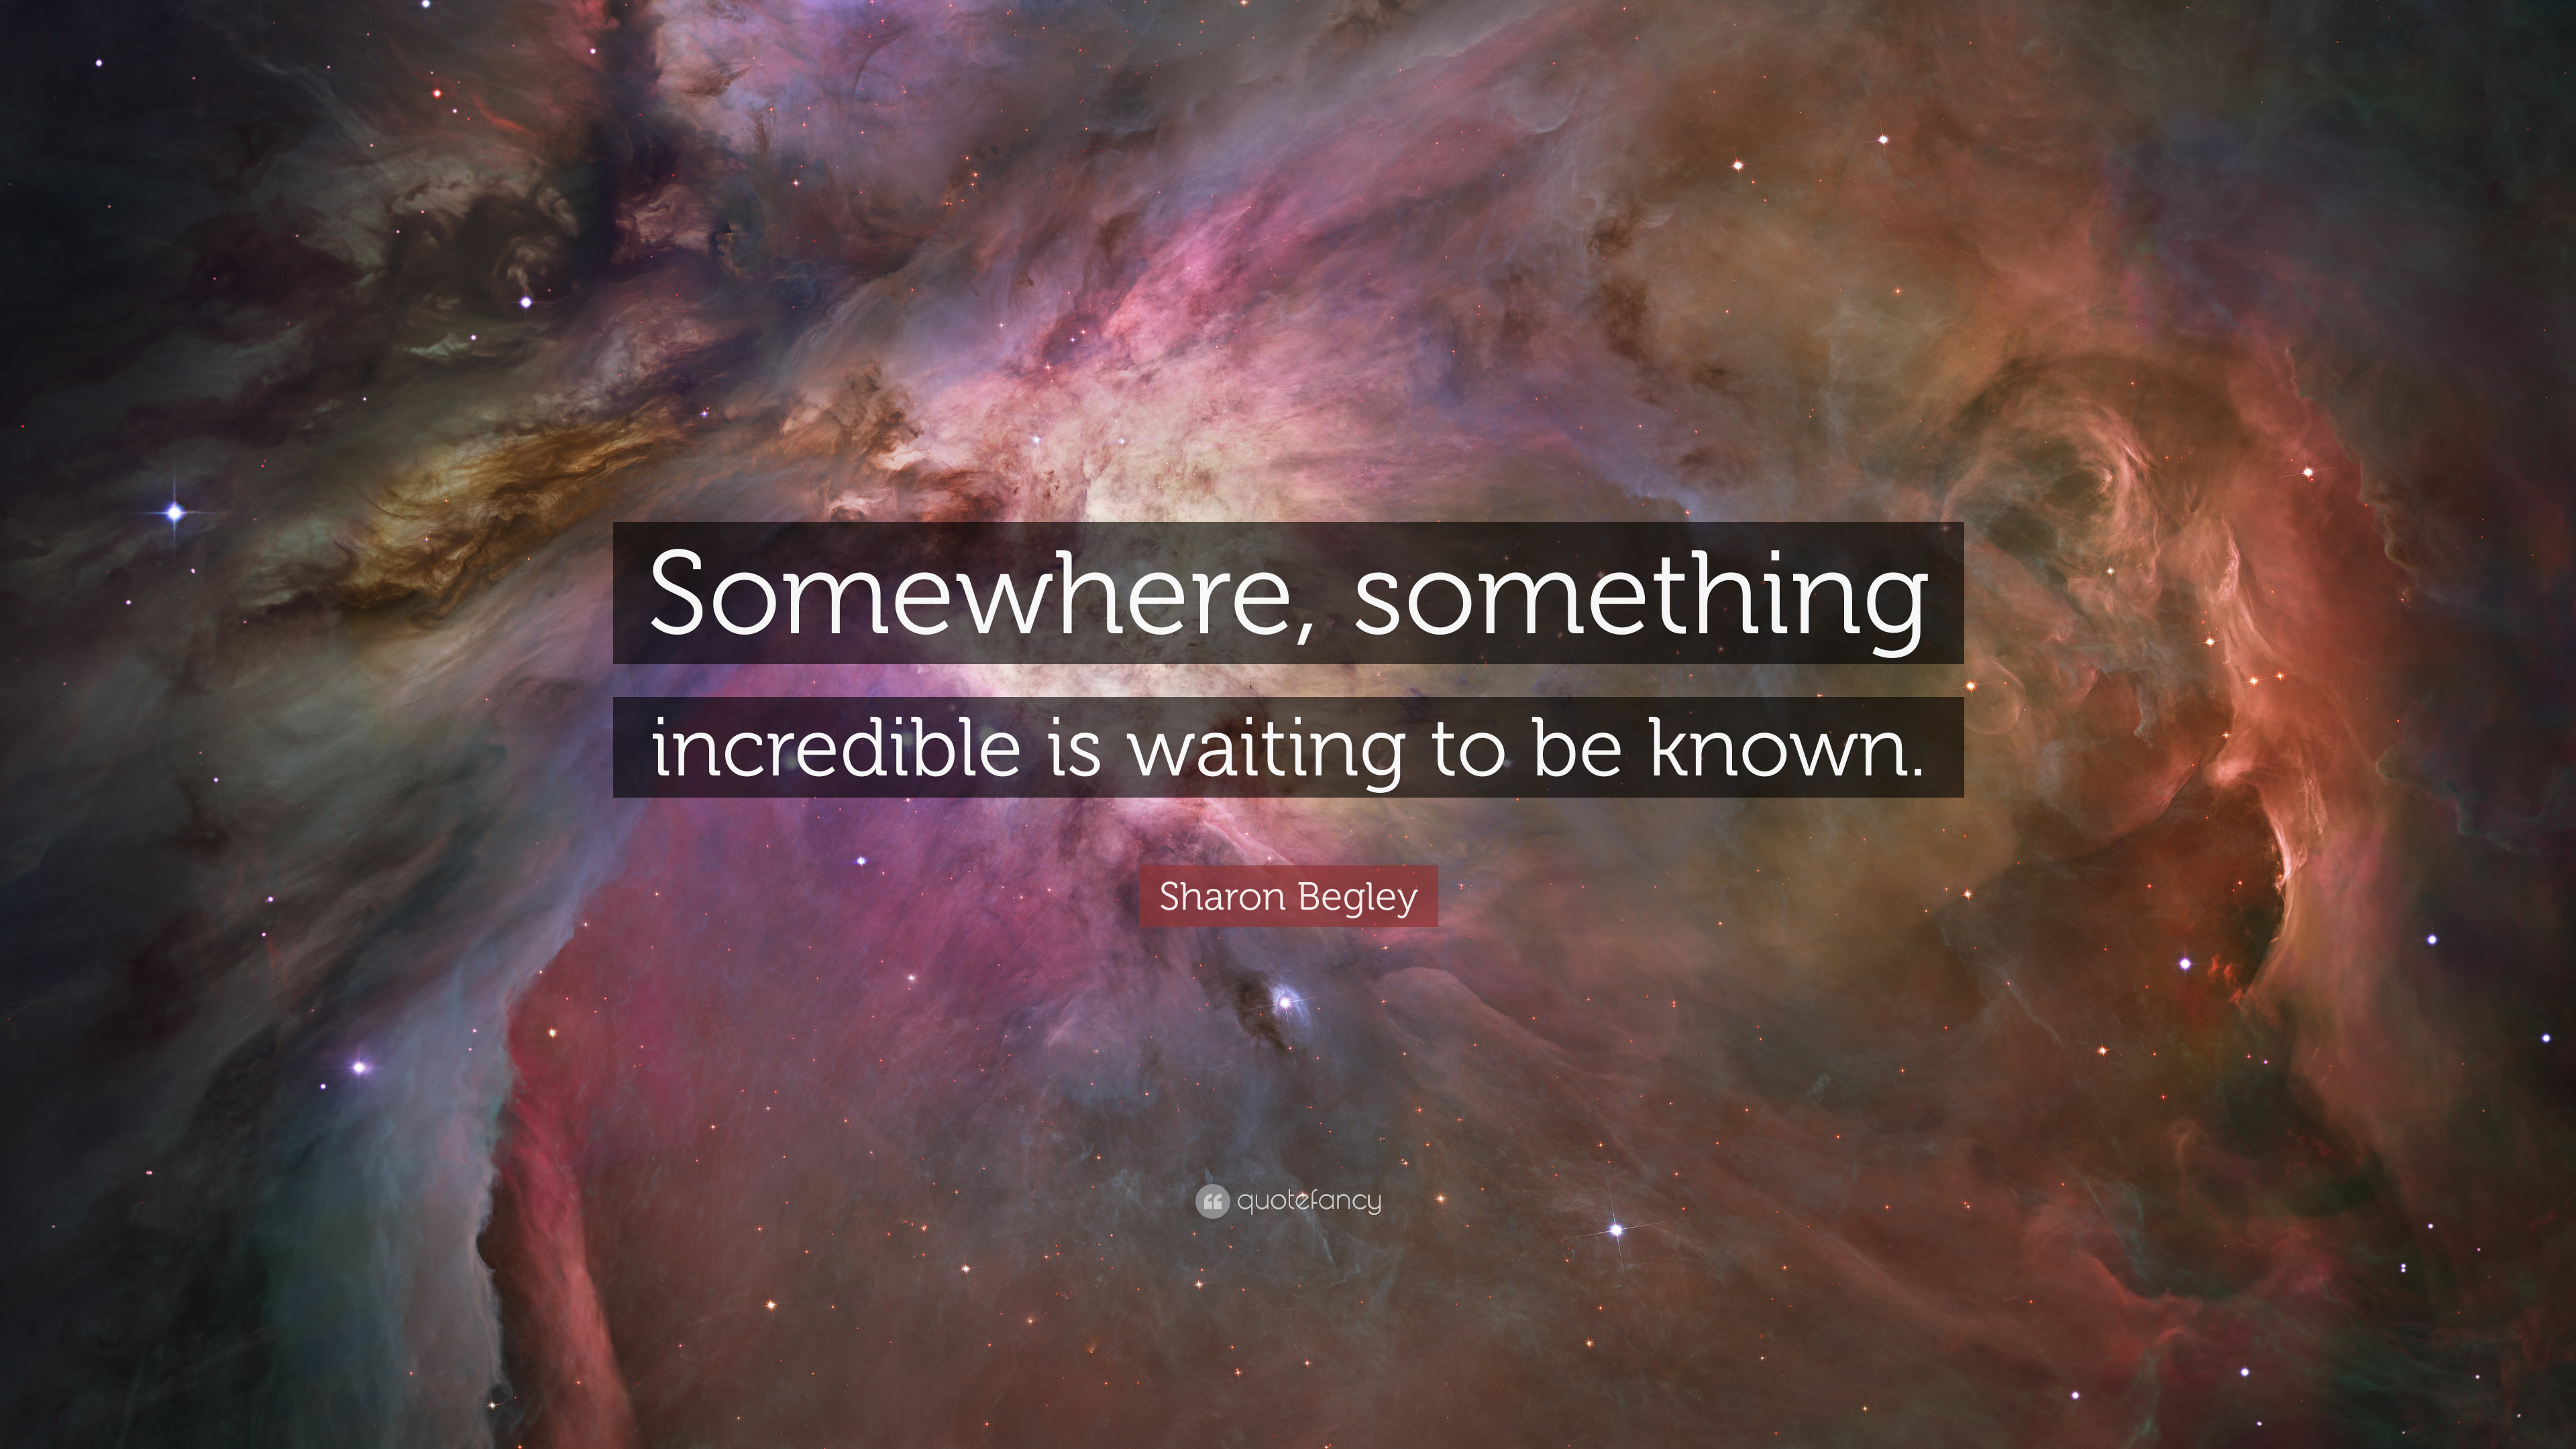 Famous quotes about 'Somewhere' - QuotationOf . COM